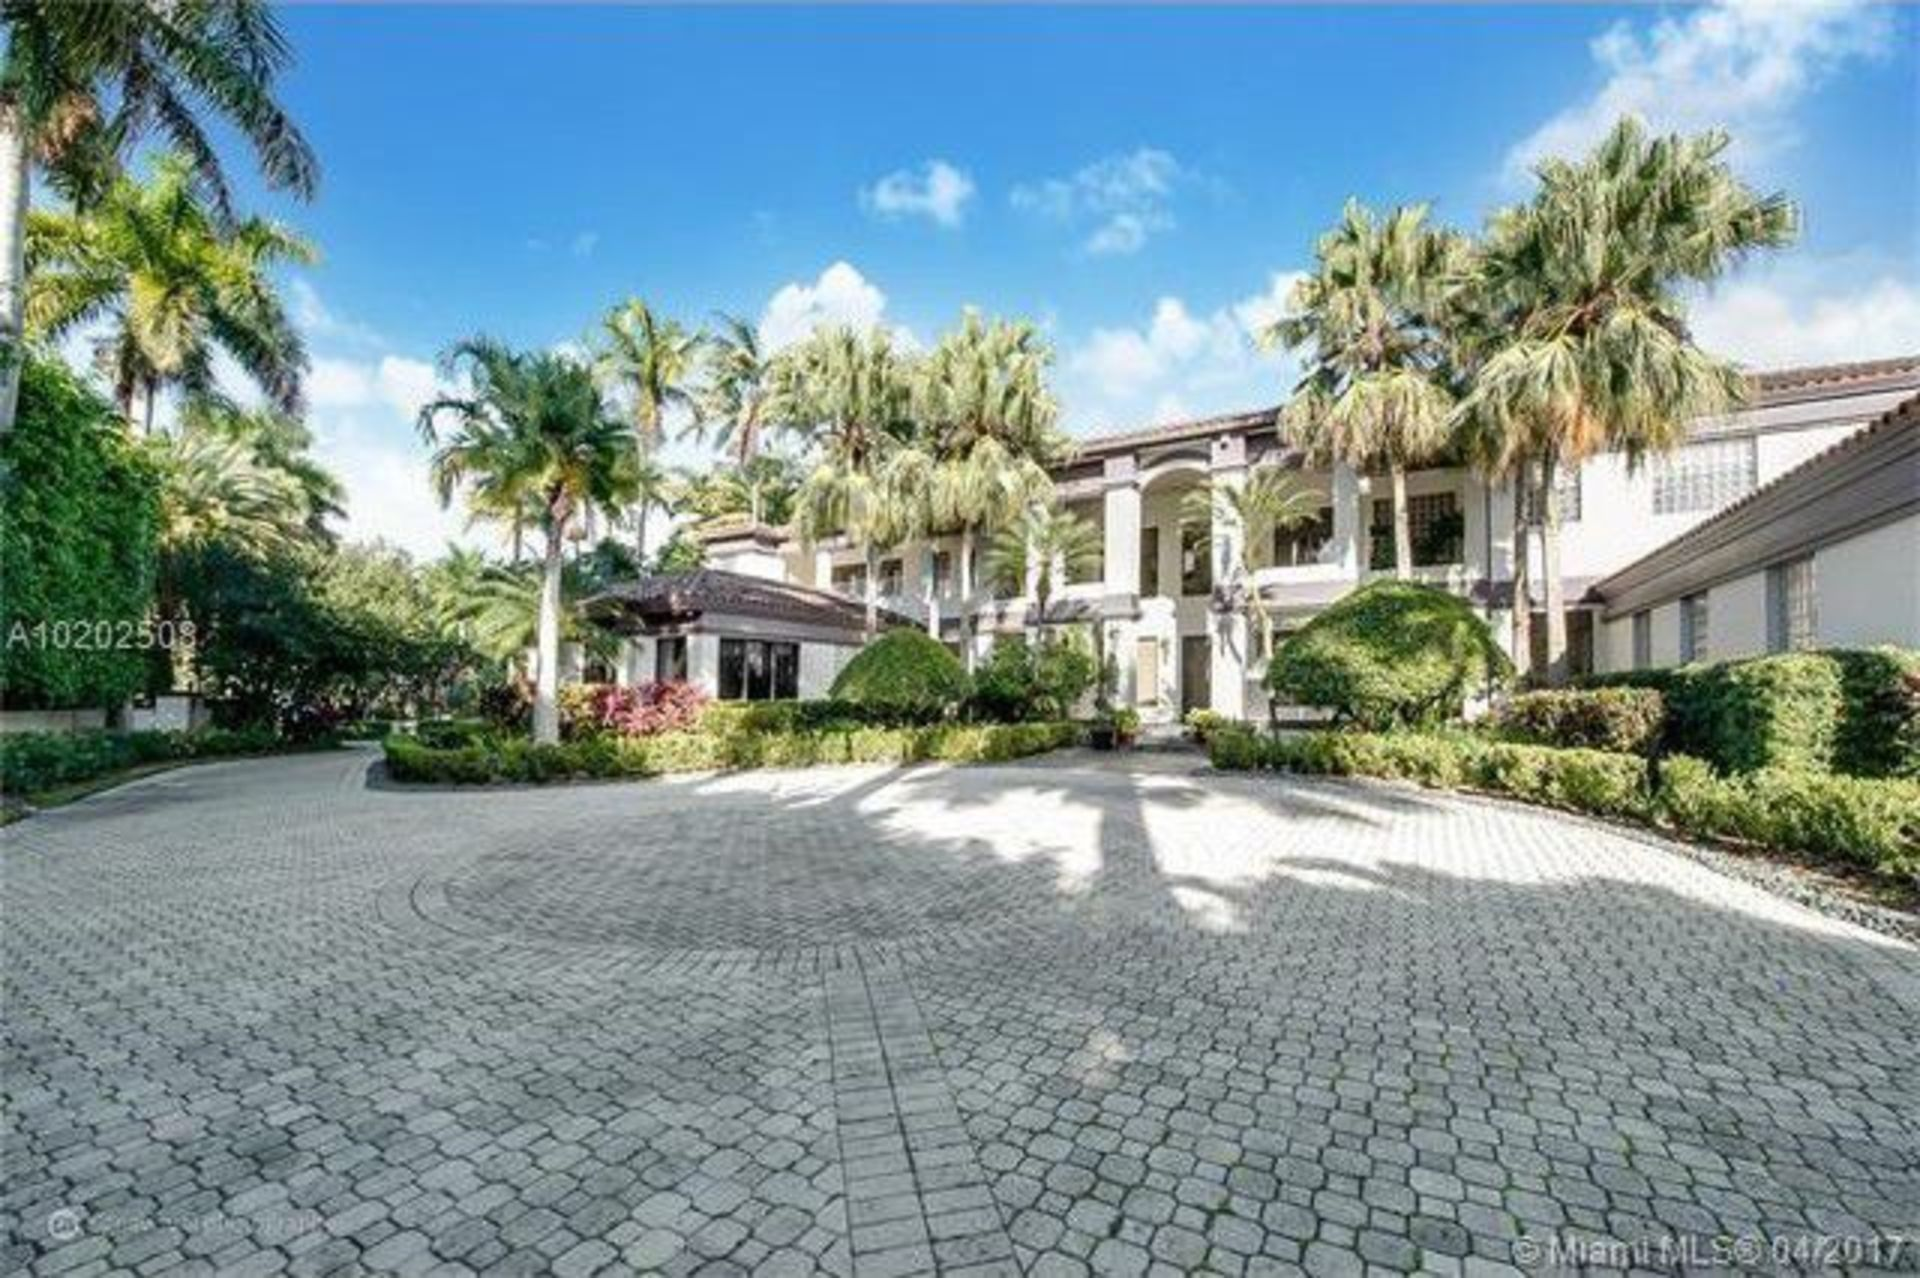 Timbaland's Miami Mansion Taken Off Market After Reported Real Estate Rumble